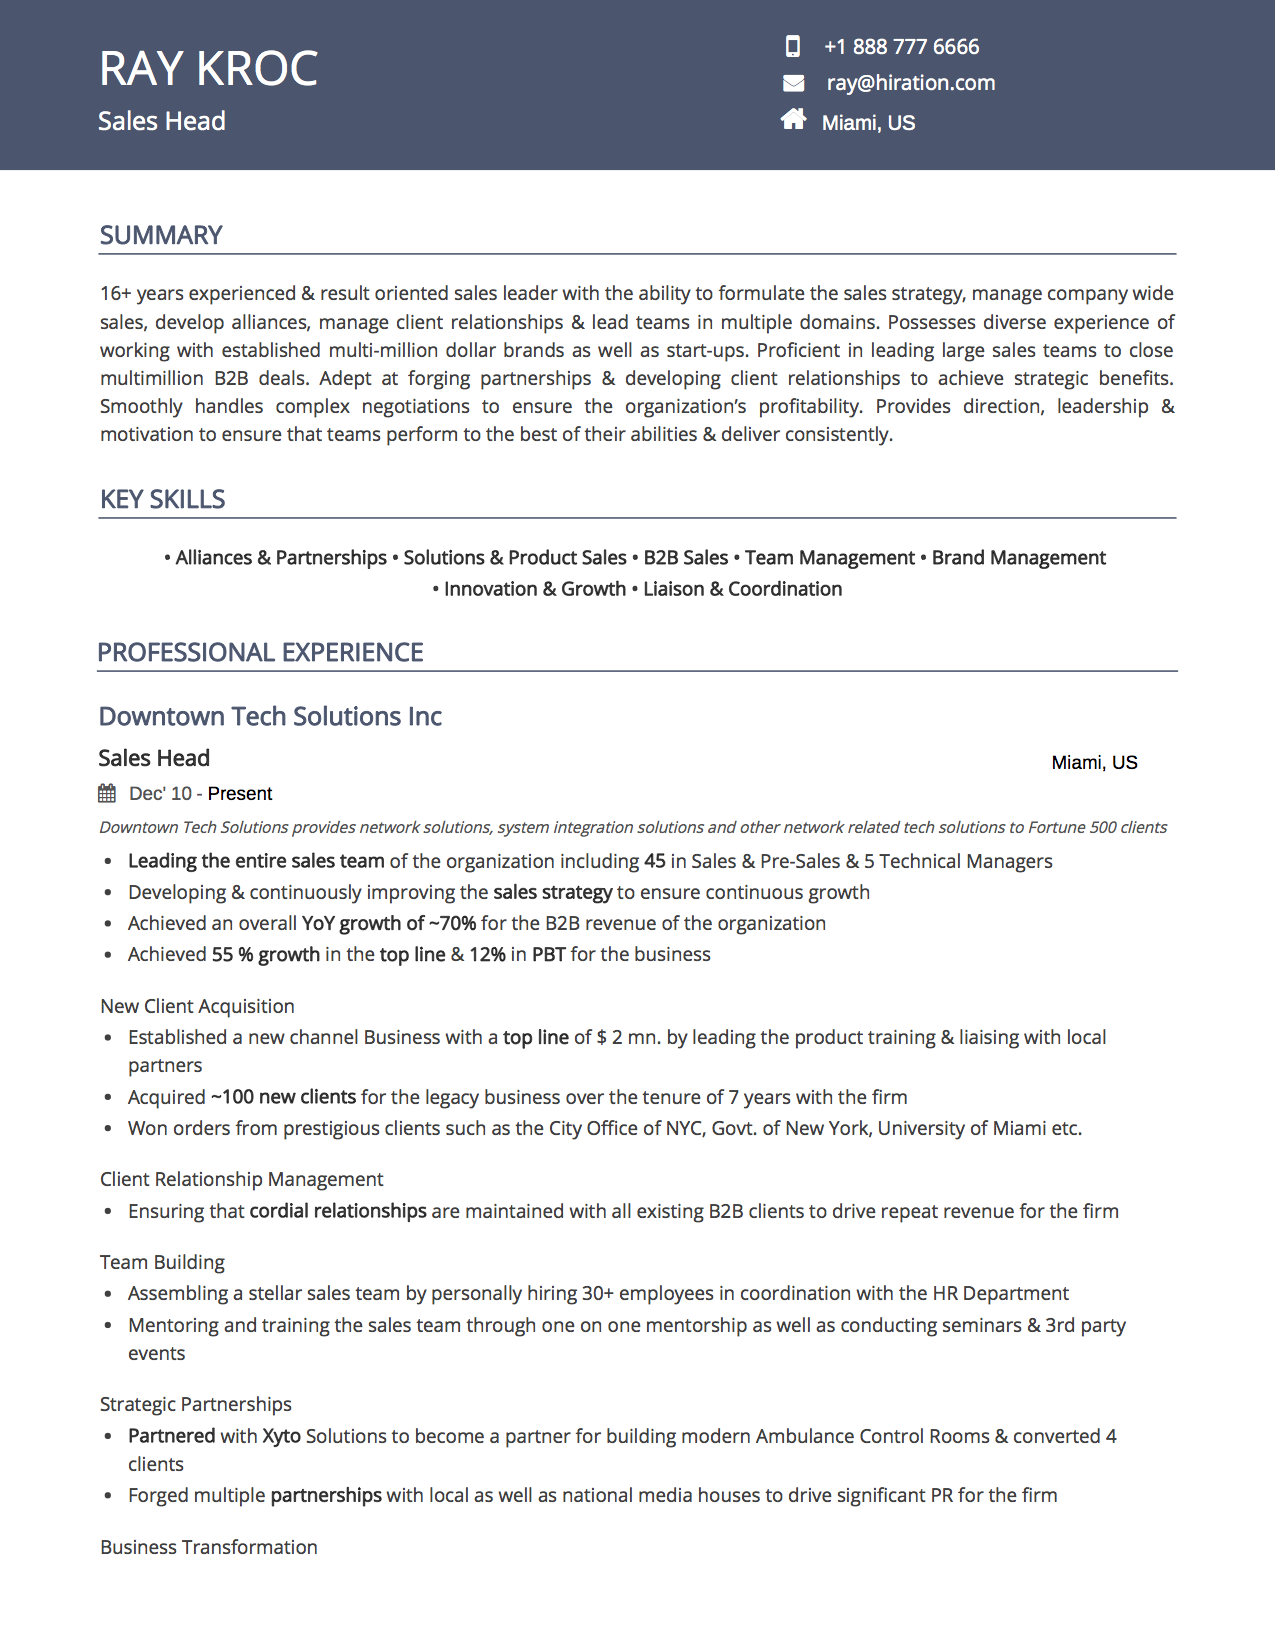 Resume Template: Royal Blue by Hiration